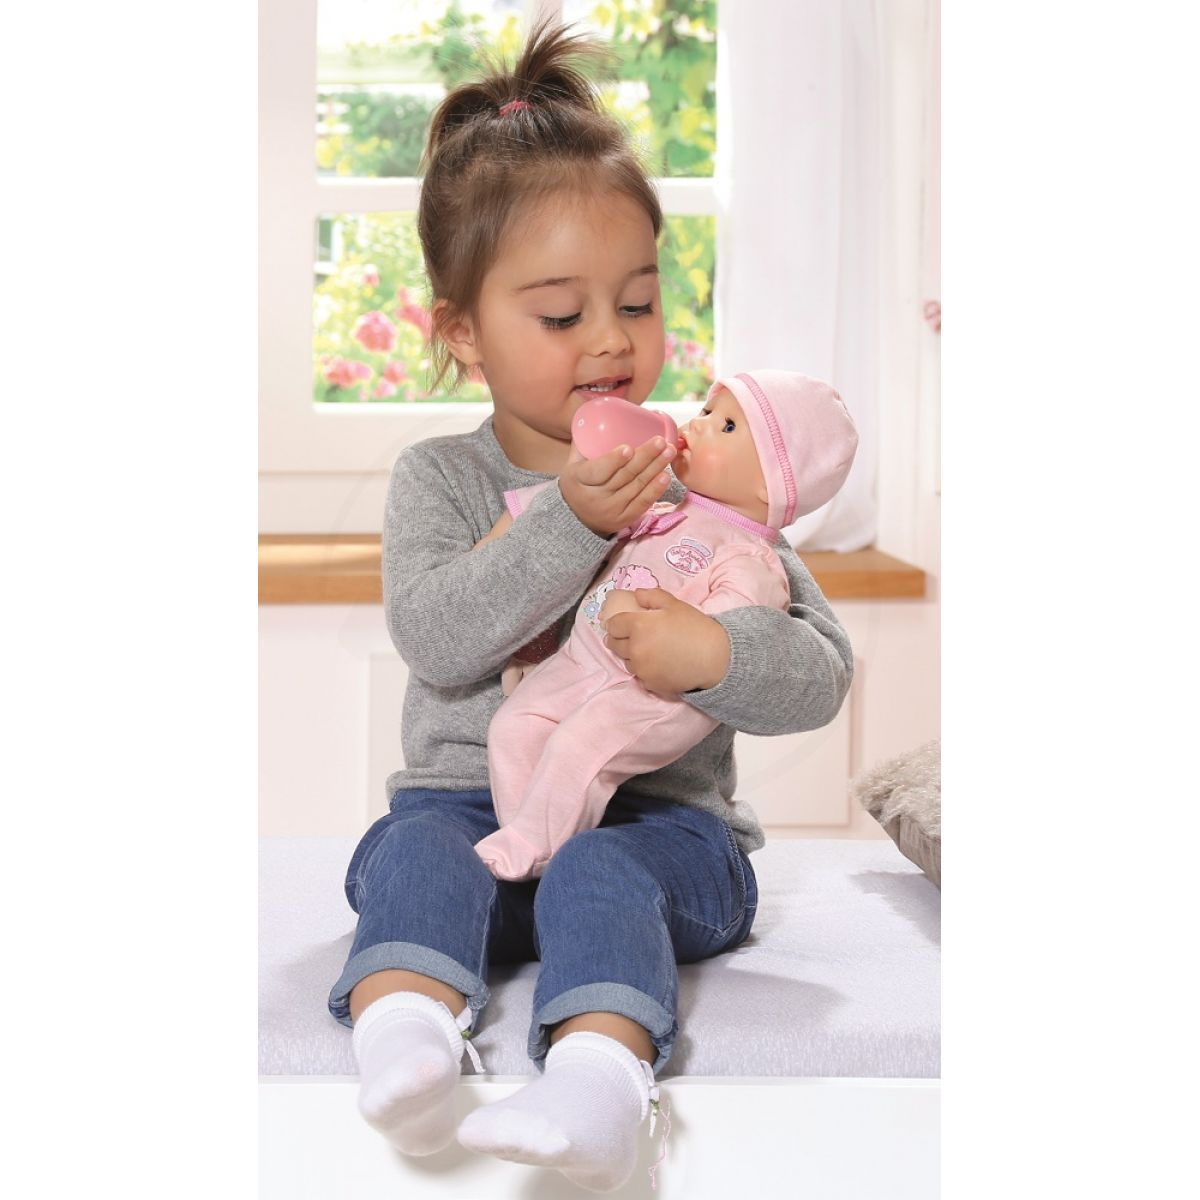 Your baby will enjoy soothing and entertainment from the first weeks of life through several years. At Walmart, we have a large selection of baby toys and entertainment items that'll help your little one interact with their environment.